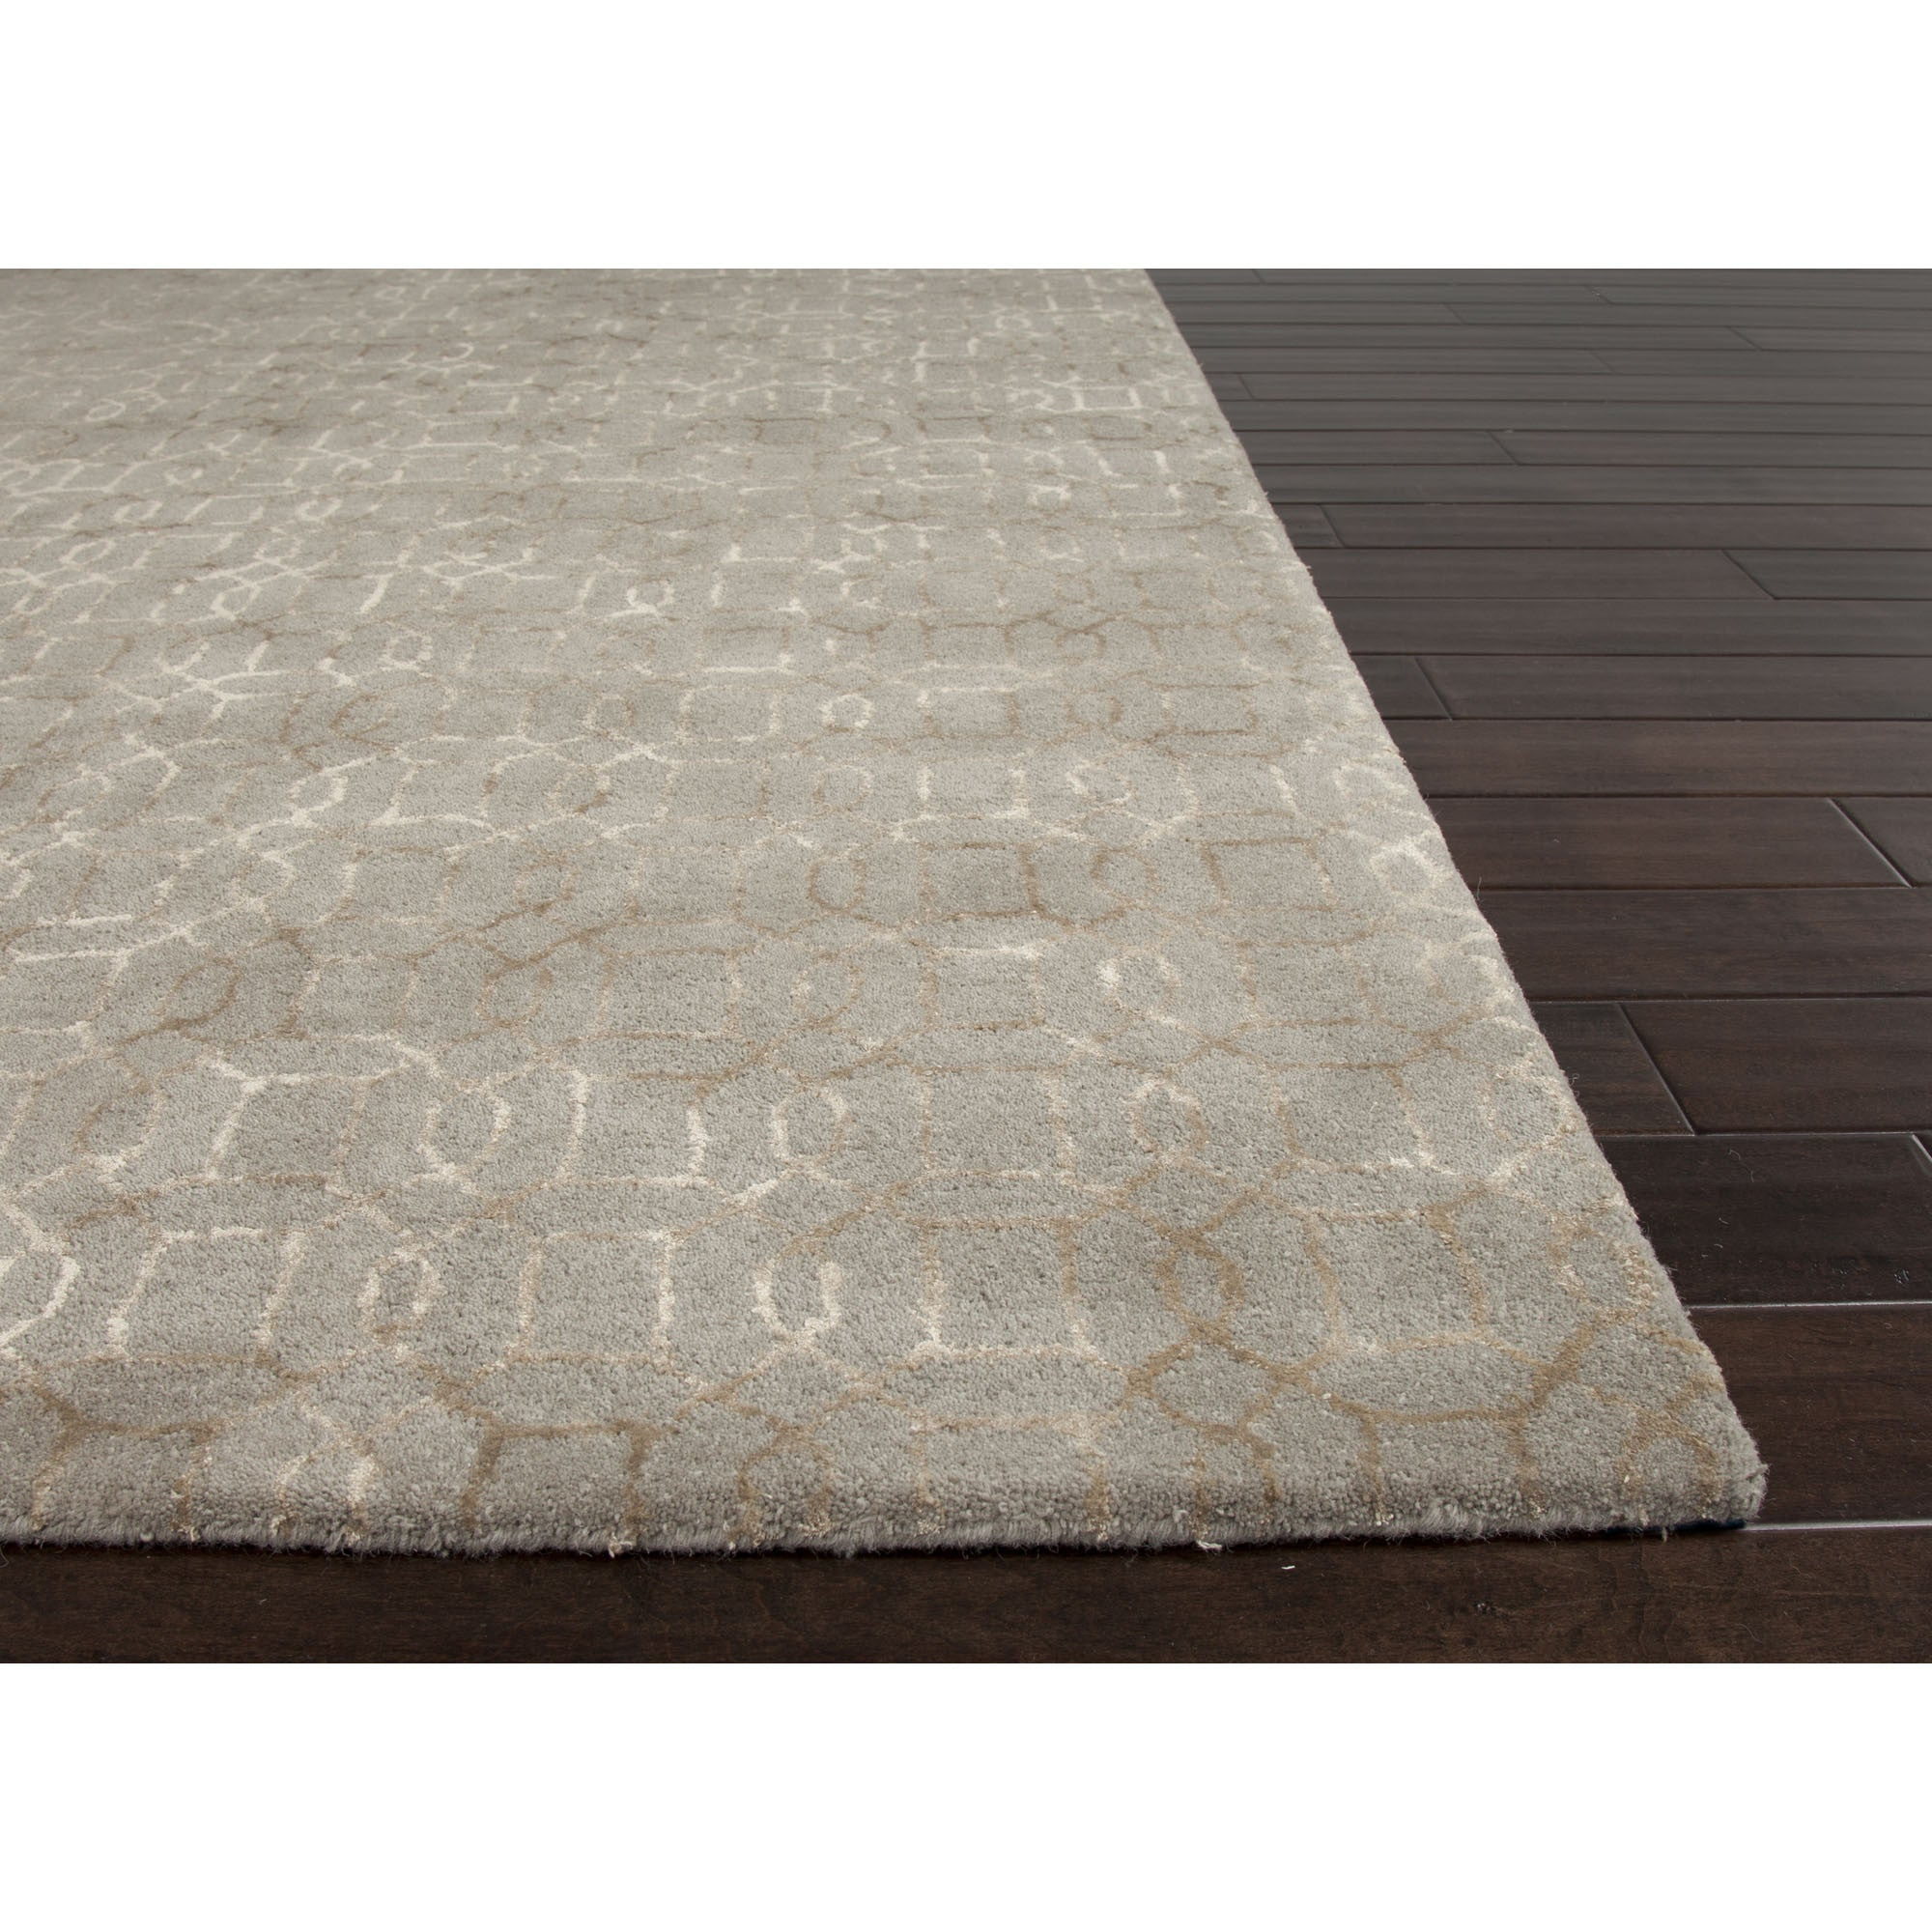 Jaipur rugs modern geometric pattern gray taupe wool and for Modern wool area rugs